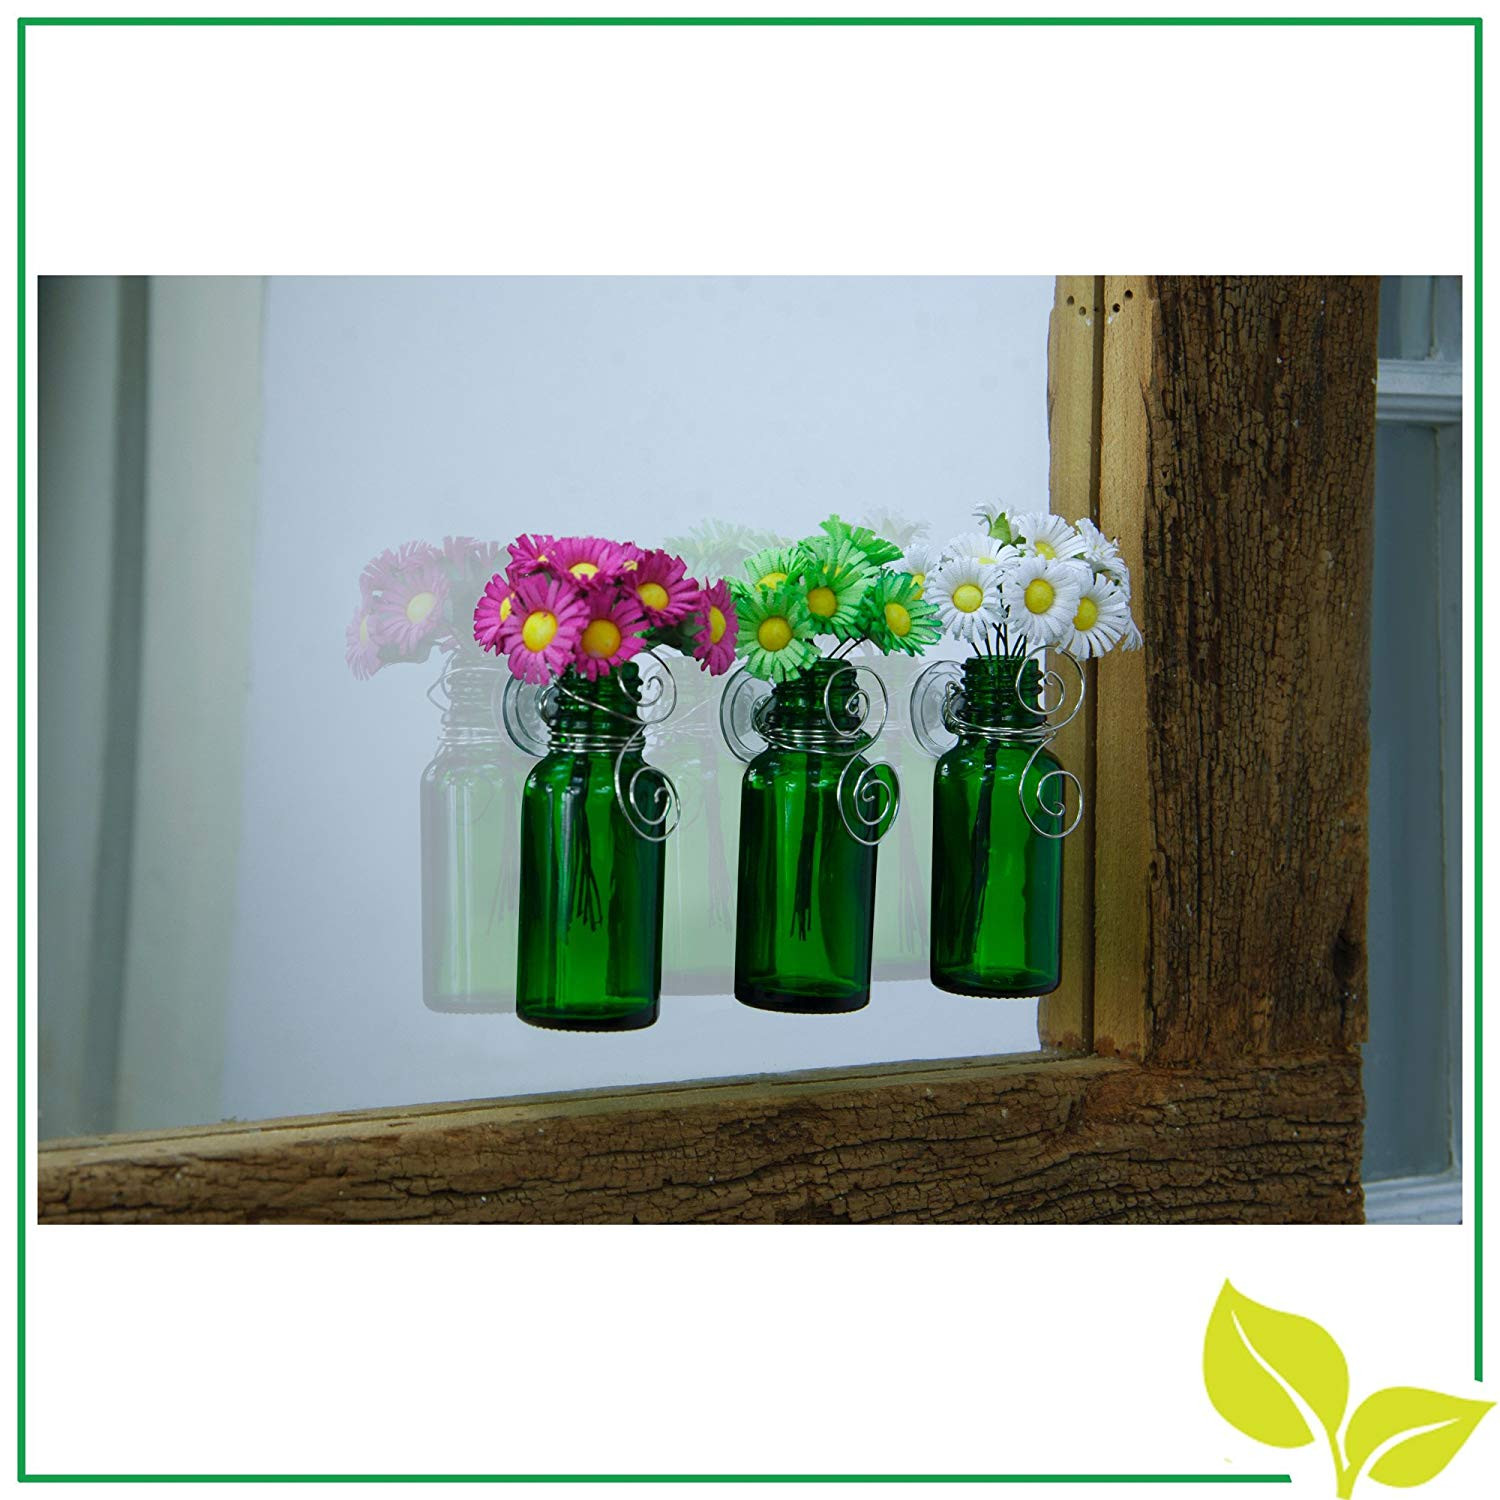 Pink Glass Bud Vase Of Amazon Com Vazzini Mini Vase Bouquet Suction Cup Bud Bottle Throughout Amazon Com Vazzini Mini Vase Bouquet Suction Cup Bud Bottle Holder with Flowers Decorative for Window Mirrors Tile Wedding Party Favor Get Well